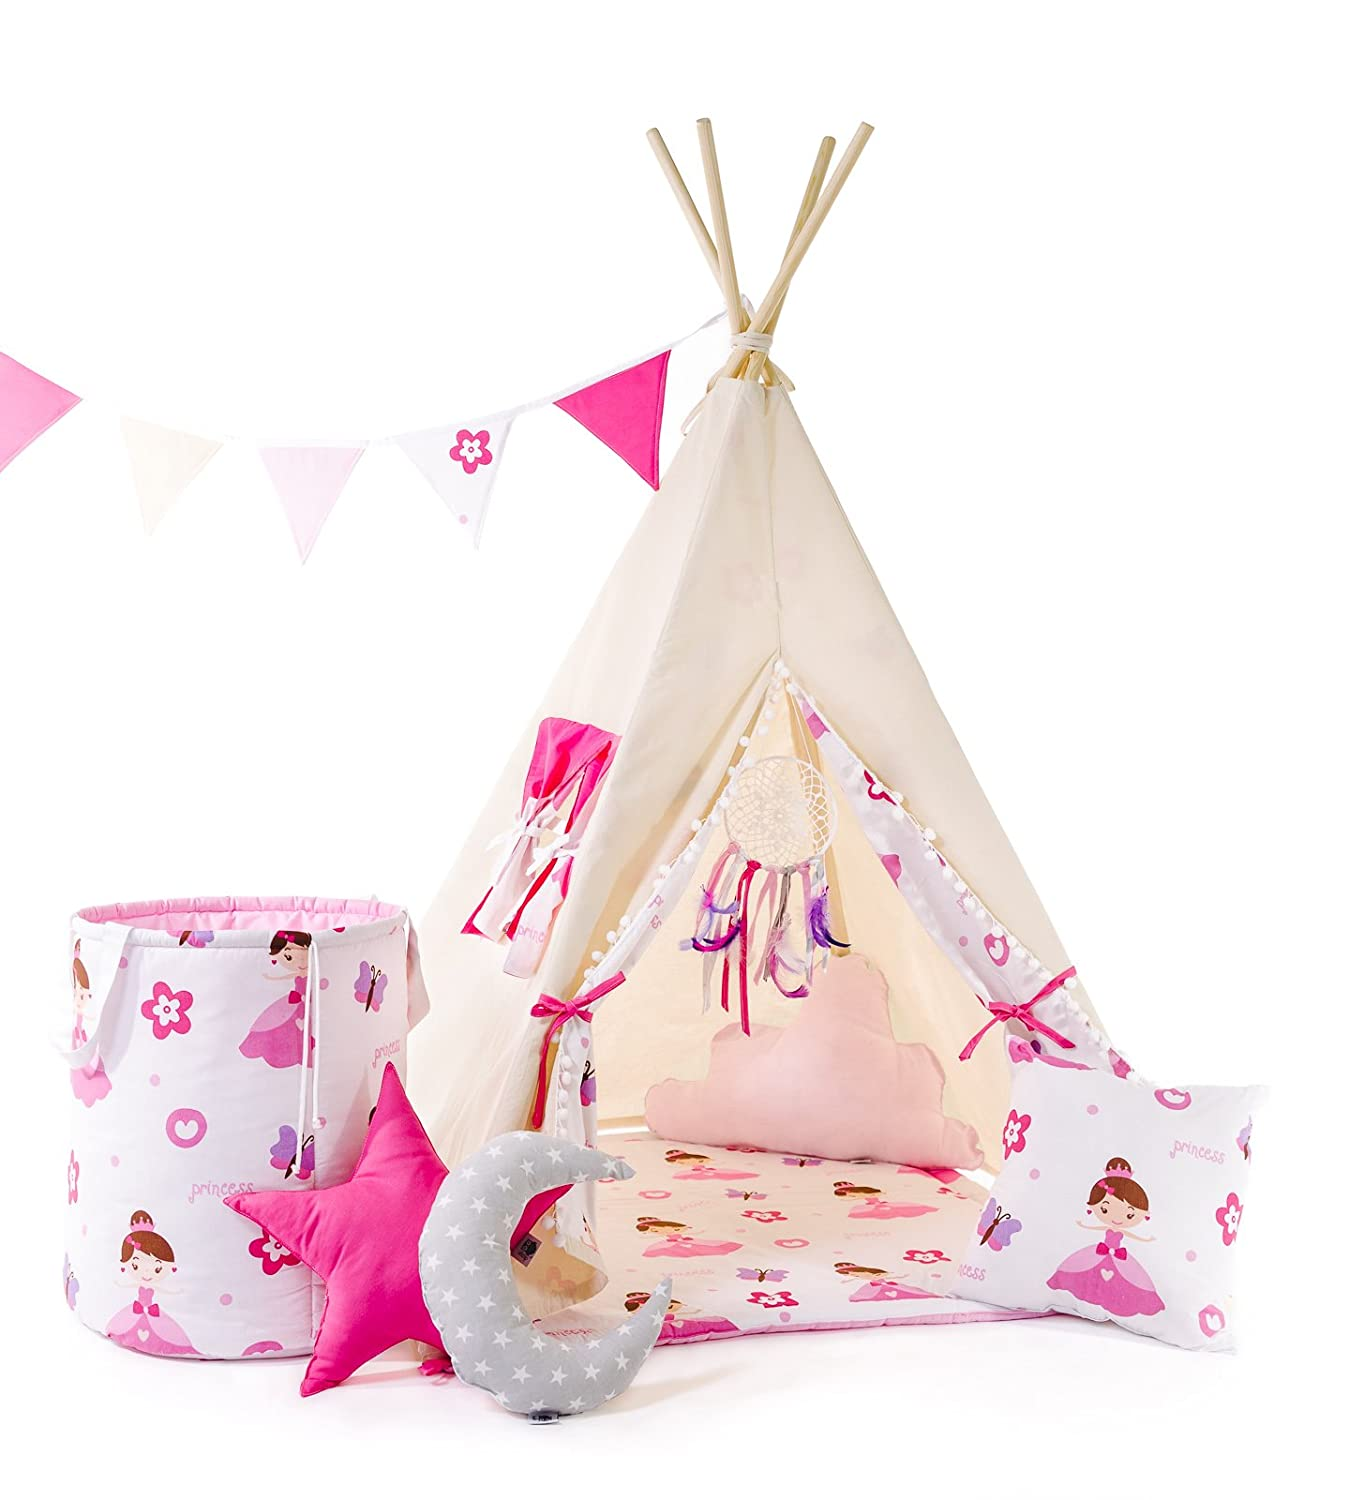 indianerzelt tipi set f r kinder spielzeug spielzelt zelt. Black Bedroom Furniture Sets. Home Design Ideas